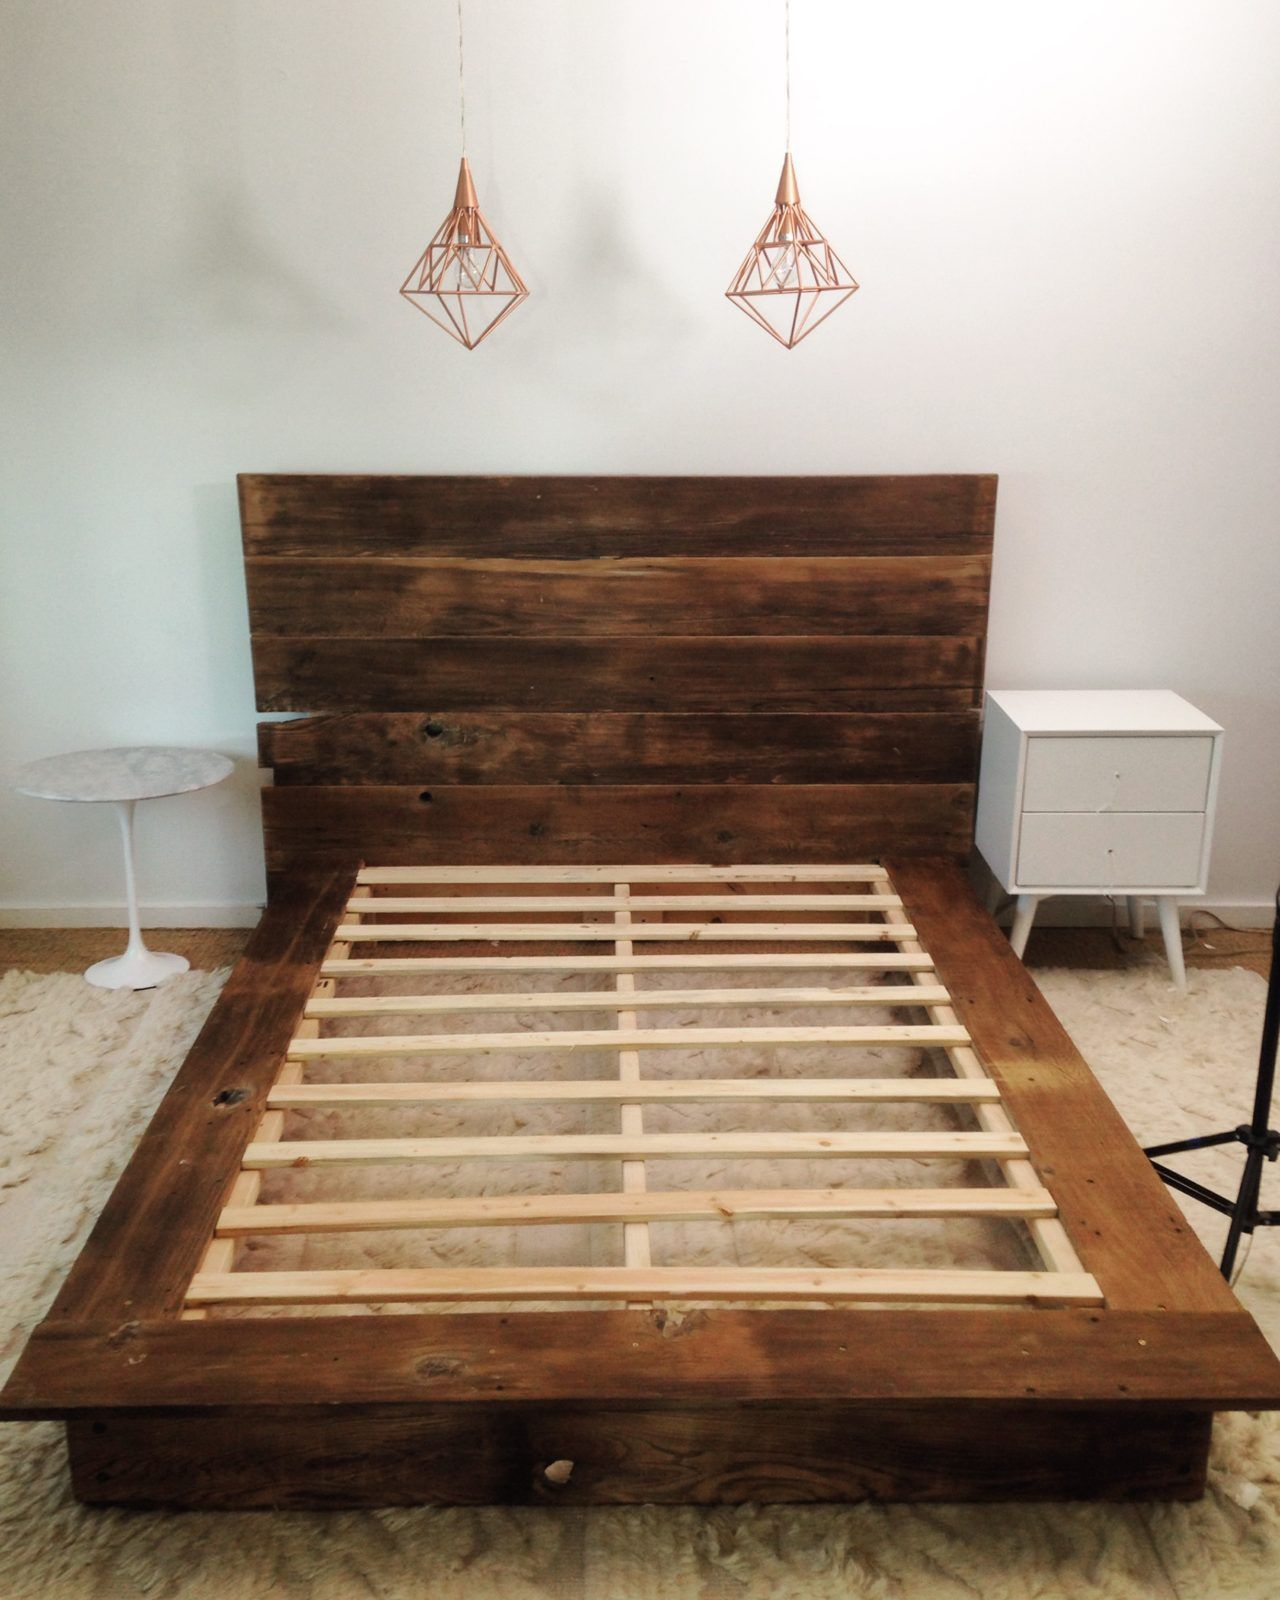 Best Diy Projects 63 Easy Diy Platform Beds That Anyone Can Build